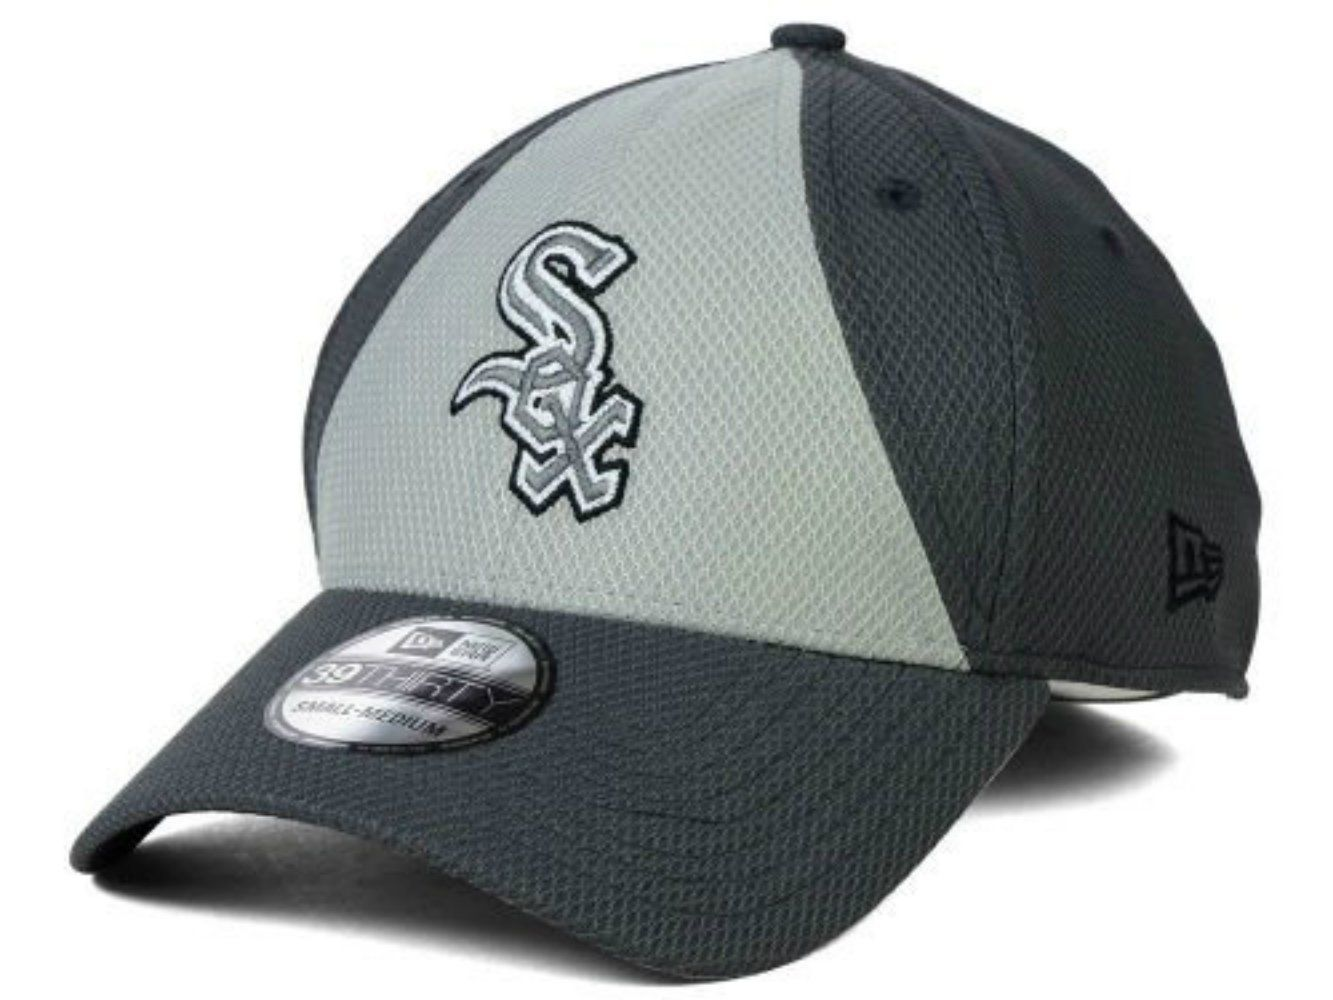 04fbbc5e24e Chicago White Sox New Era Size Small Medium Flex Fit Charcoal Gray Hat Cap -